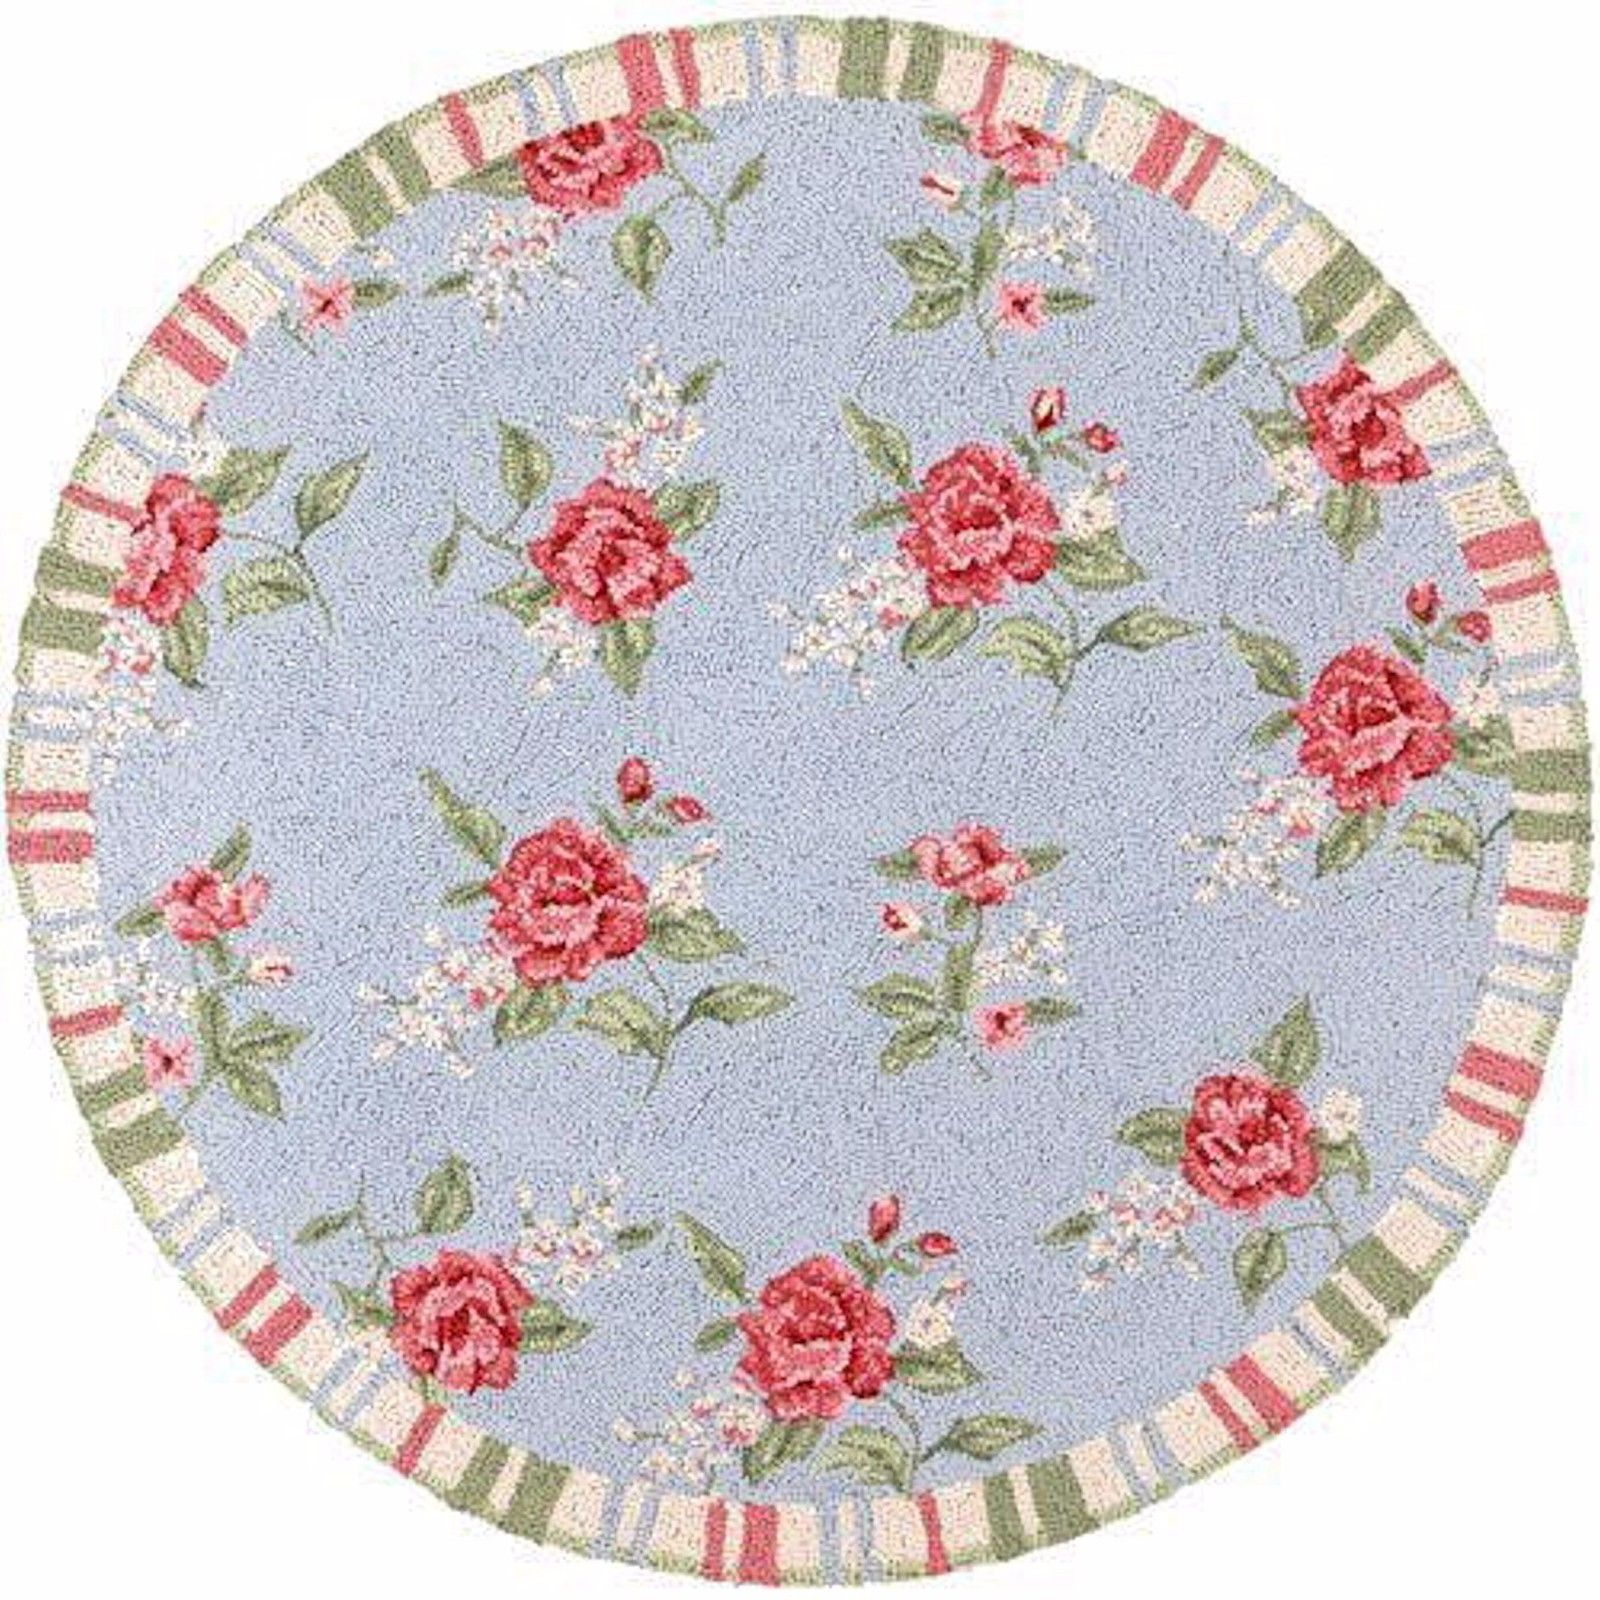 Dollhouse Miniature Pink Floral Round Circle Iron On Fabric Rug 1:12